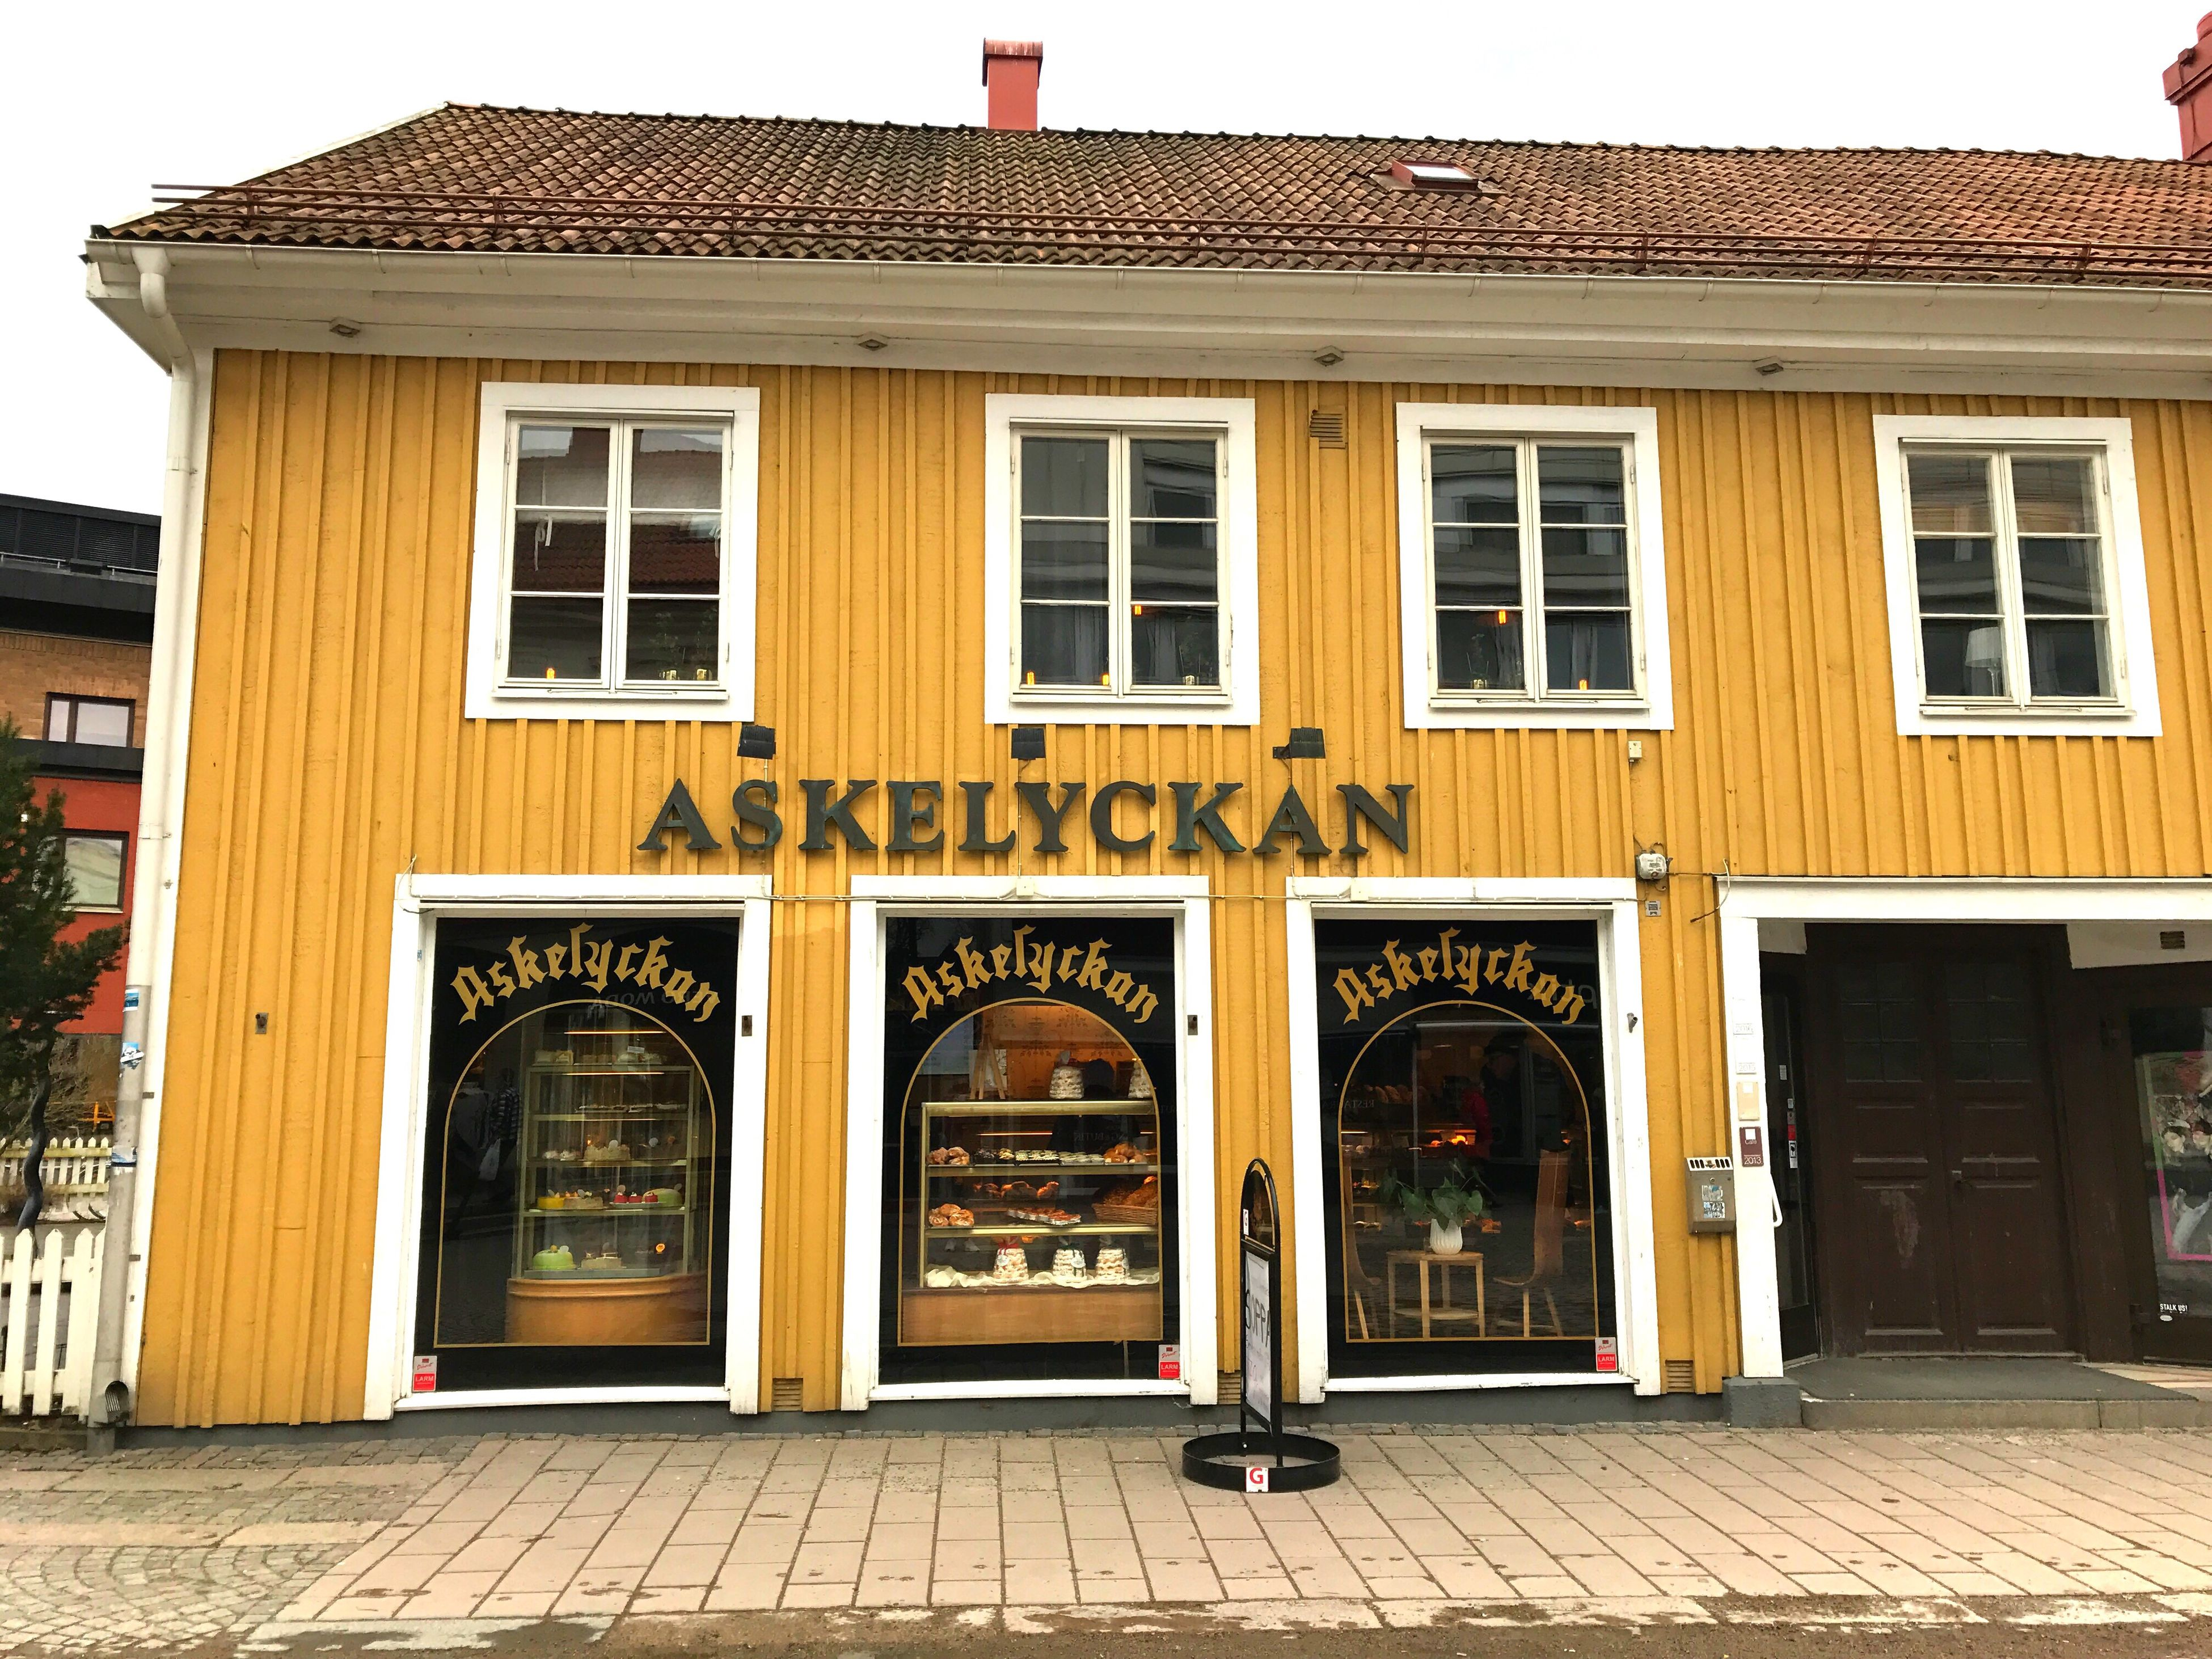 building exterior, architecture, built structure, window, no people, history, facade, outdoors, yellow, day